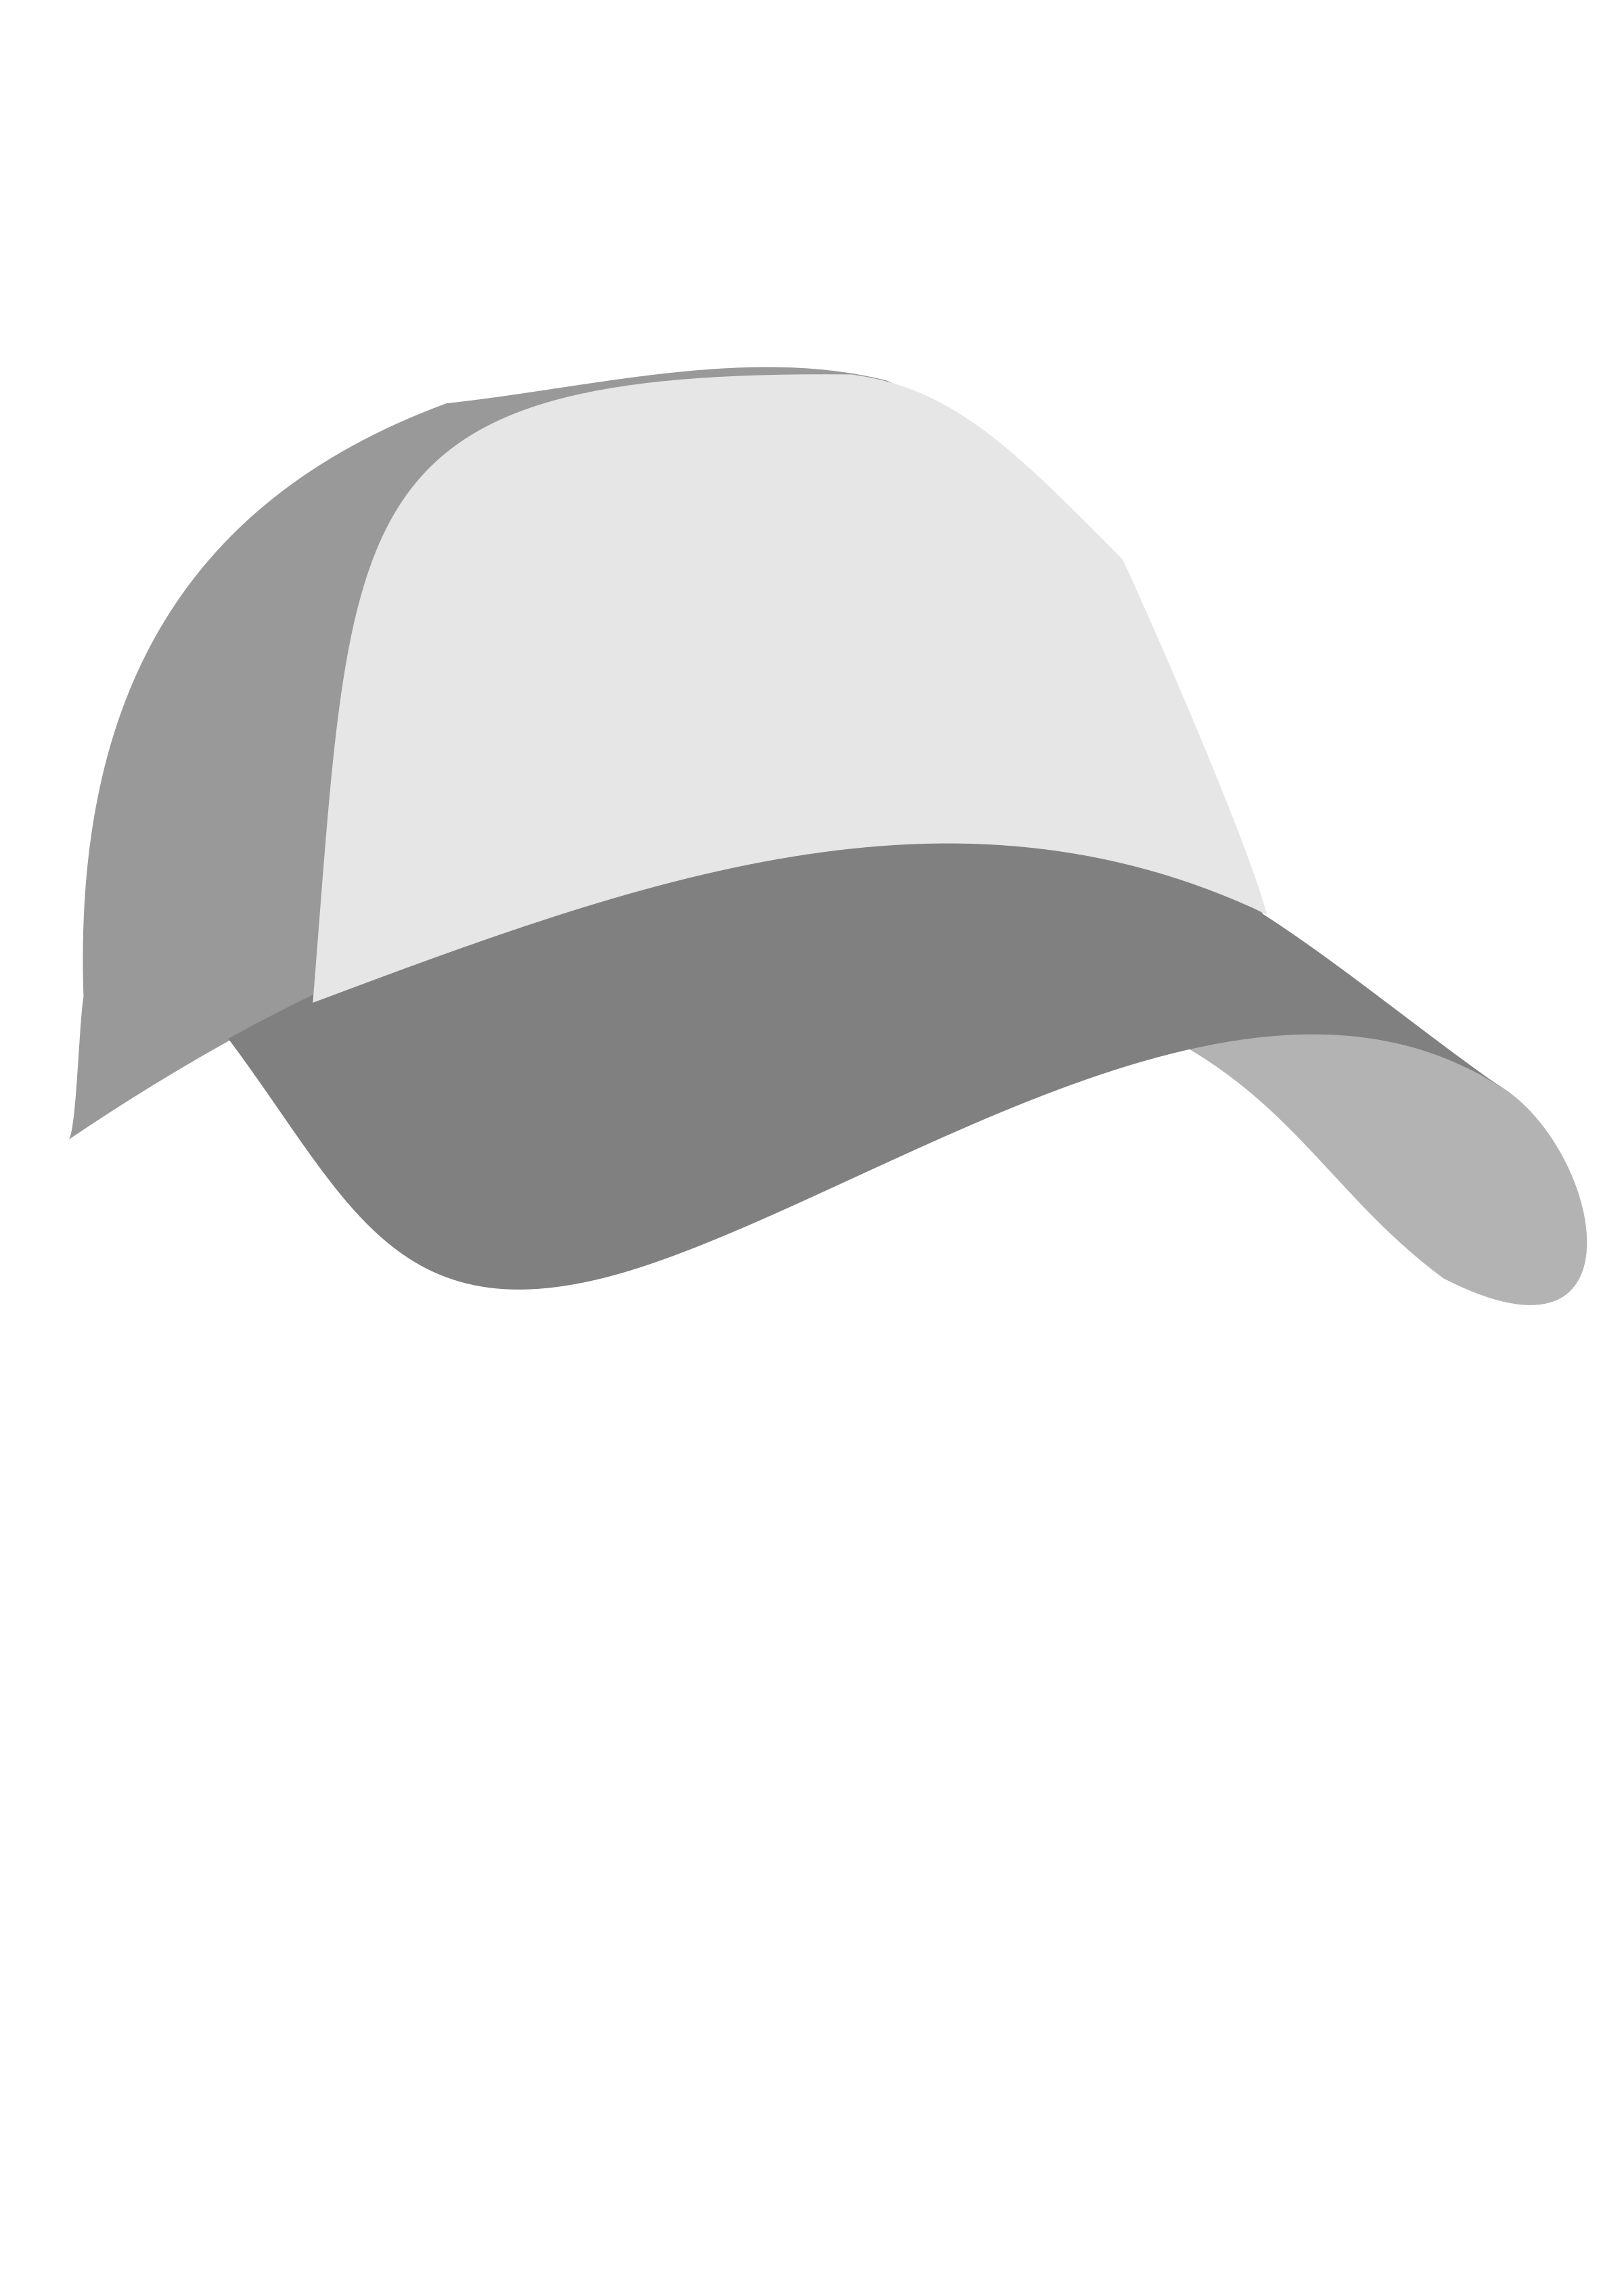 Baseball Cap by tuxwrench